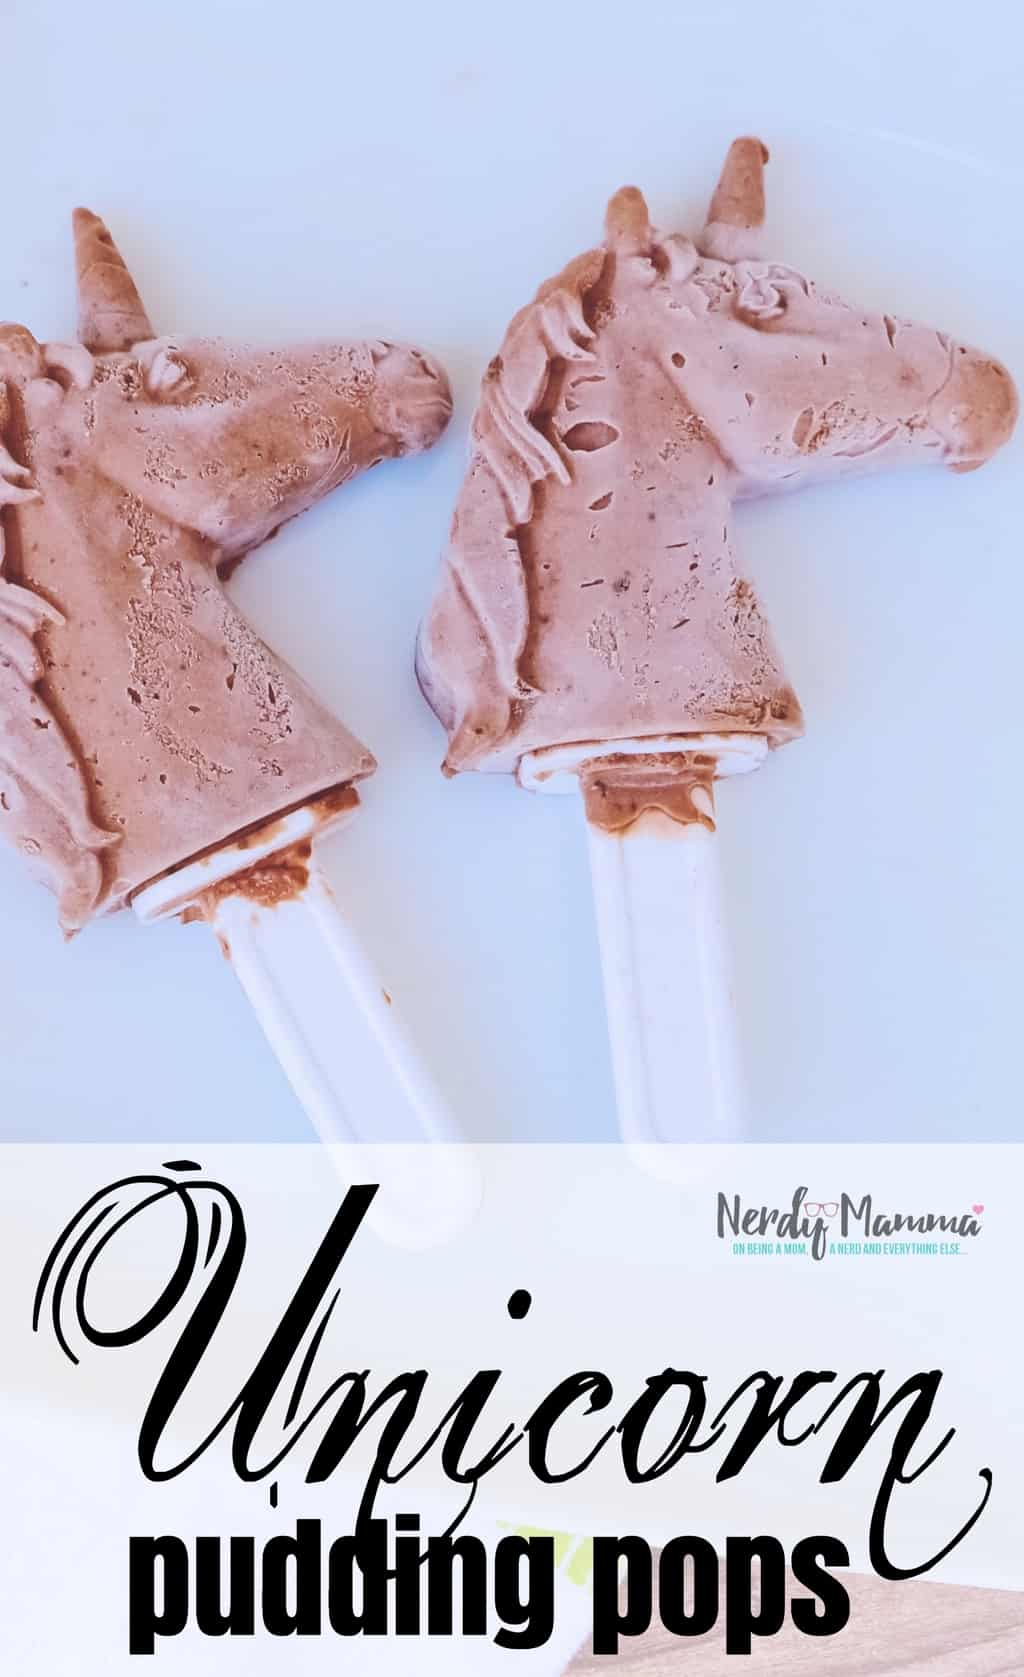 I have to admit, I'm not always a fan of chocolate. But when I made these Ridiculously Chocolatey Unicorn Pudding Pops, I couldn't get enough! #unicorn #puddingpop #unicornpuddingpop #sumemrtreat #popsicle #nerdymammablog